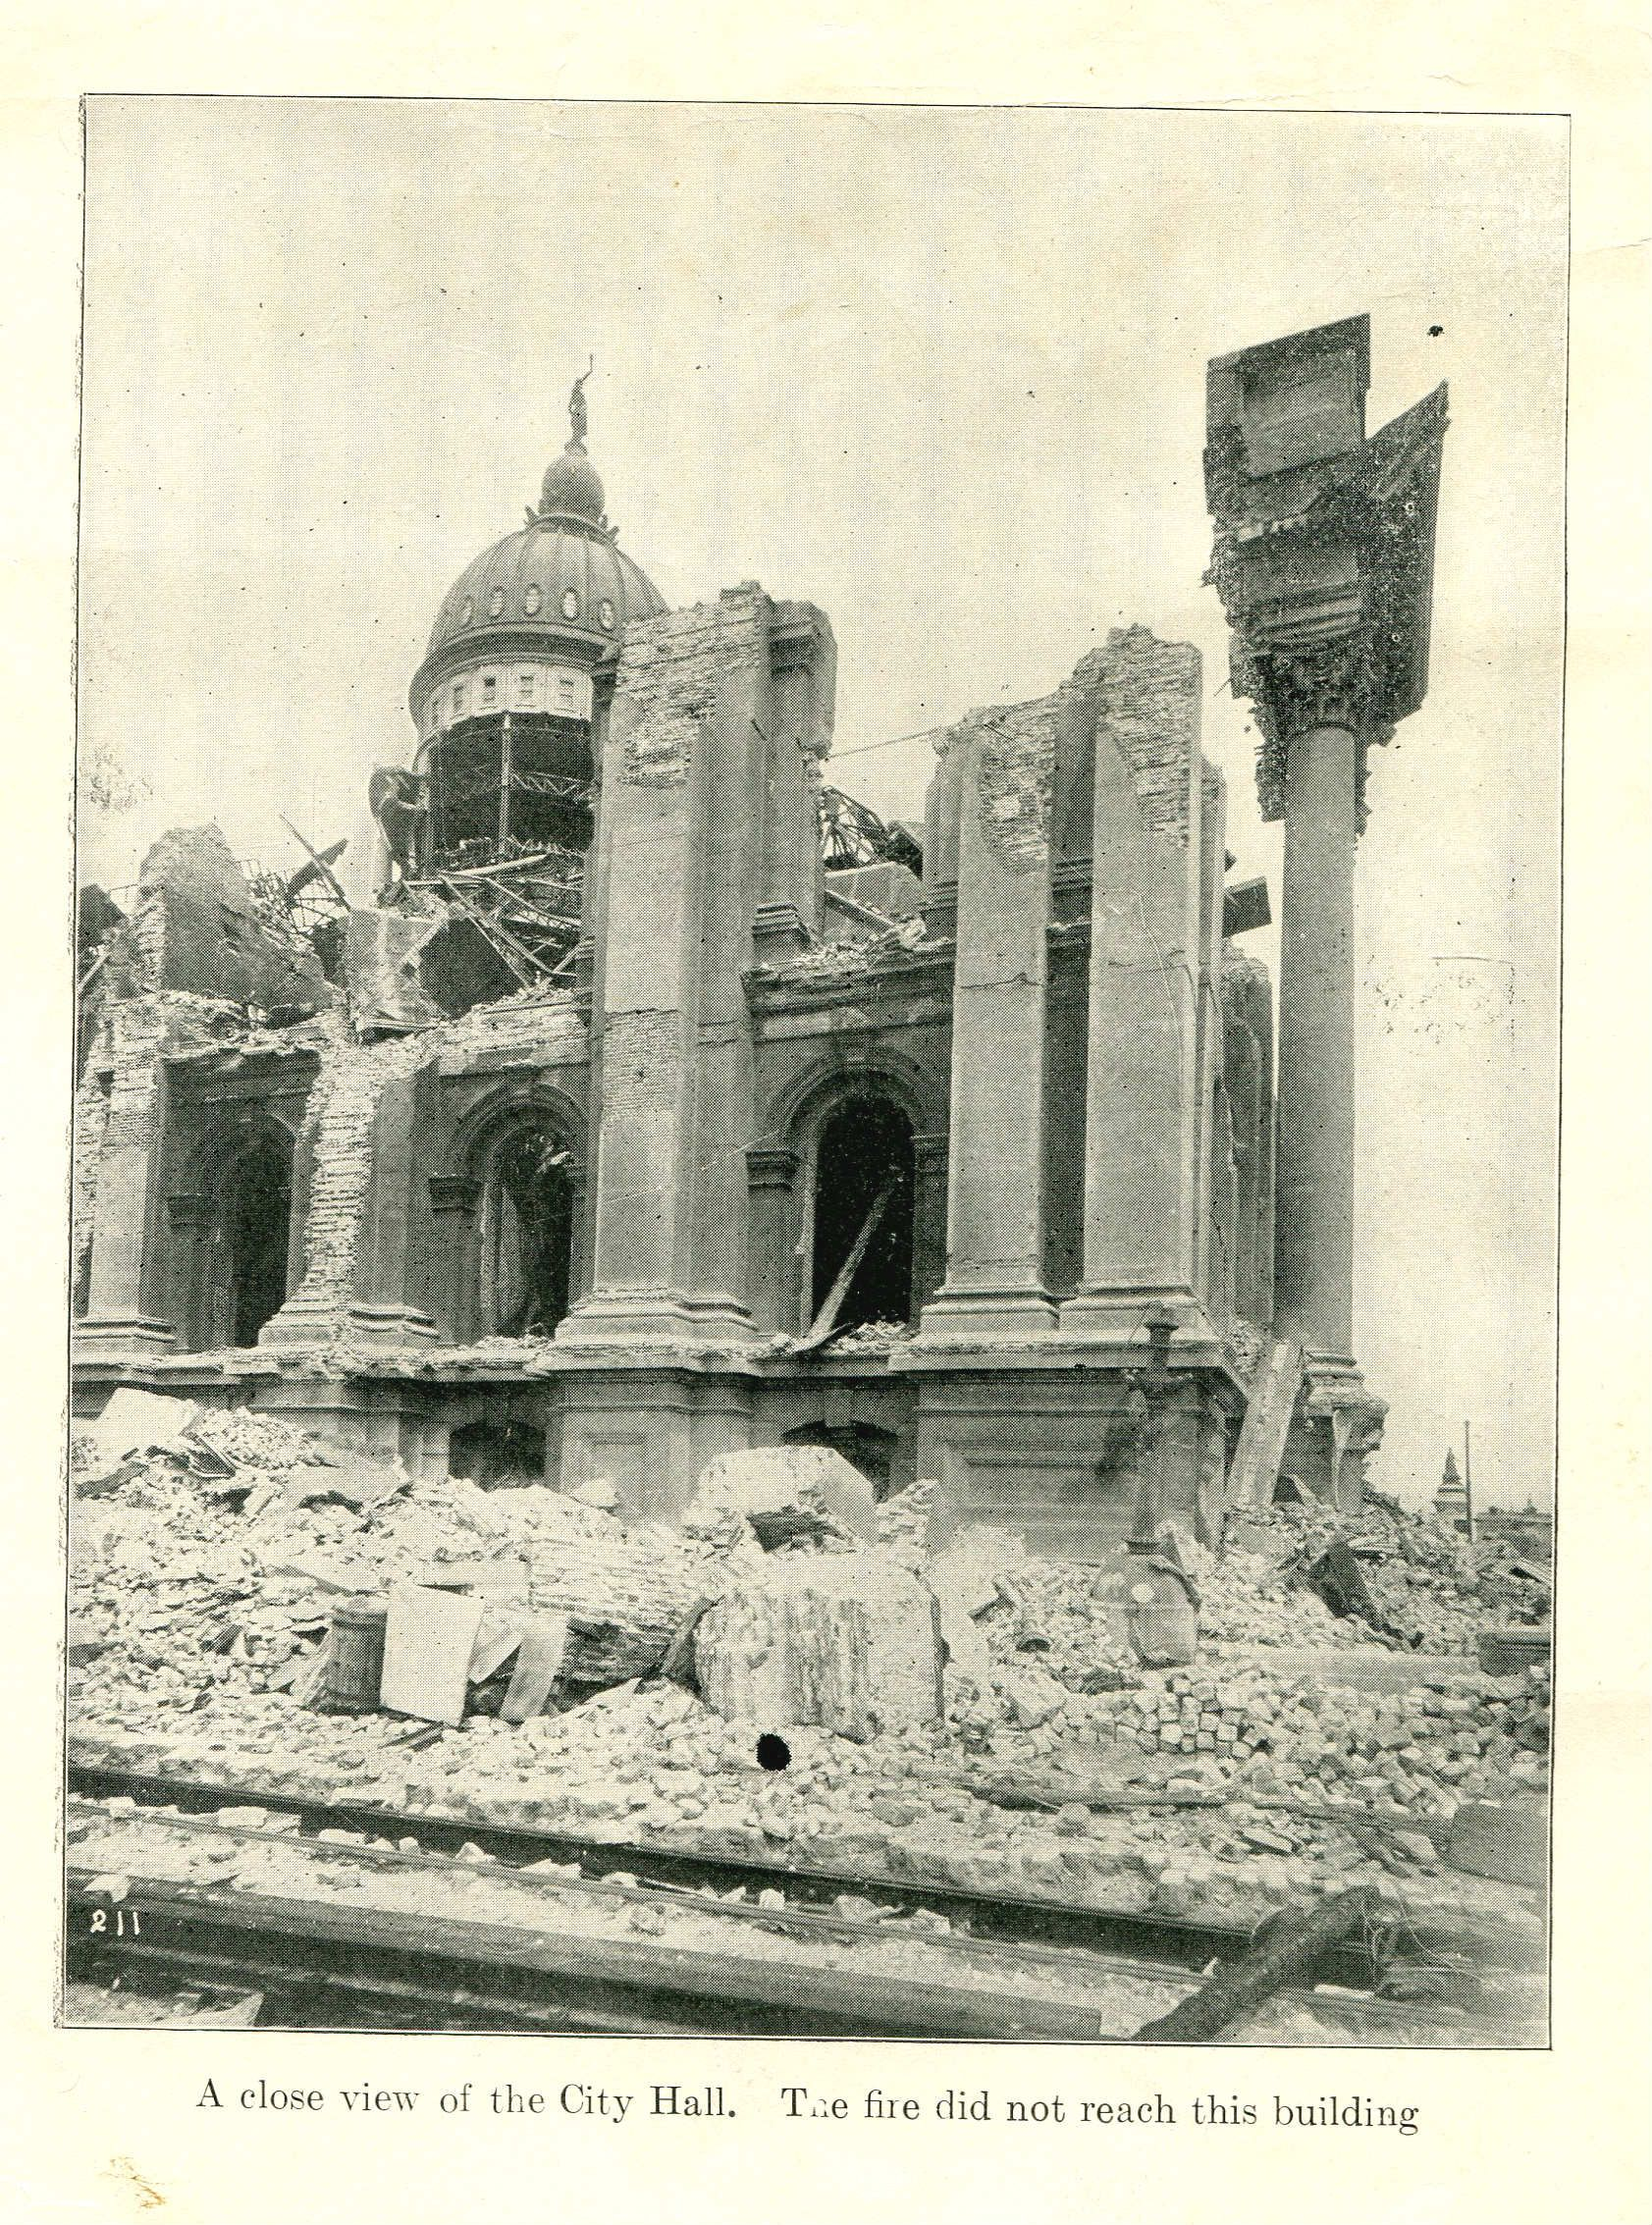 A close view of the City Hall. The fire did not reach this building. San Francisco Earthquake of 1906.